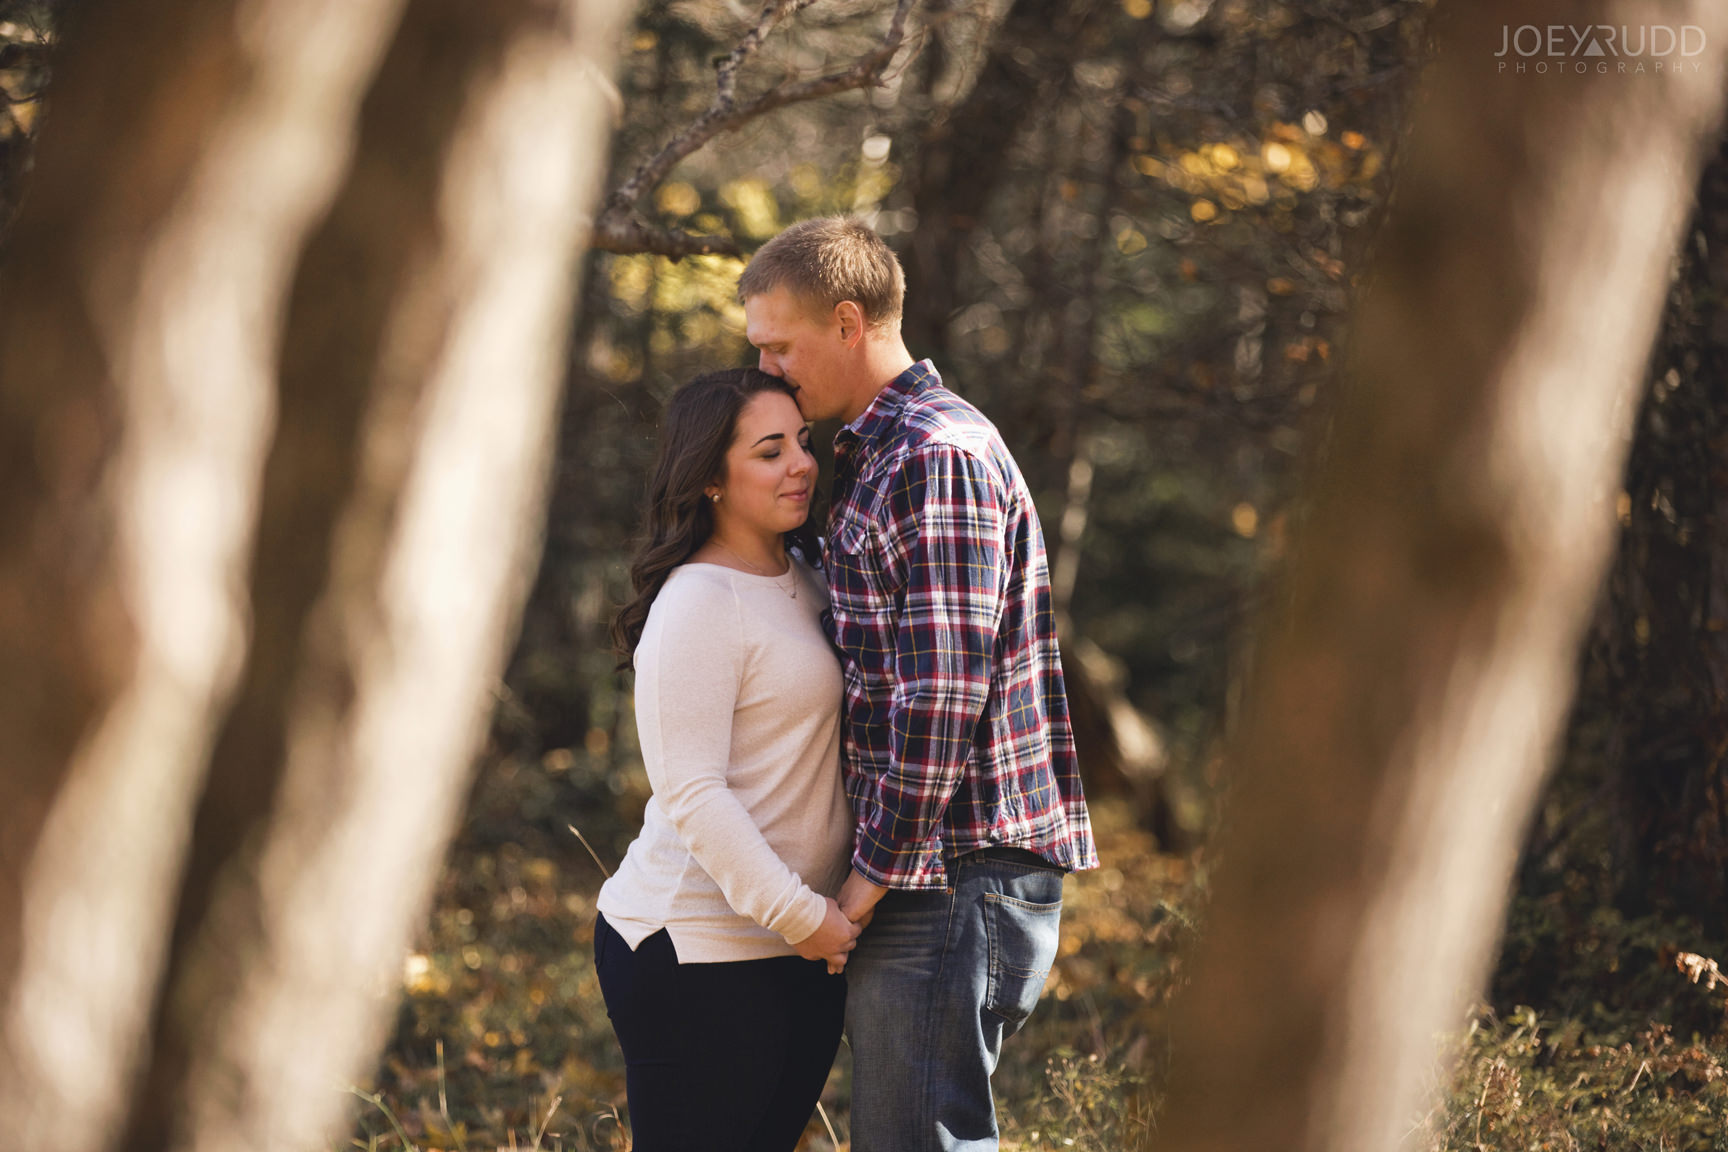 Carleton Place Engagement by Joey Rudd Photography Creative